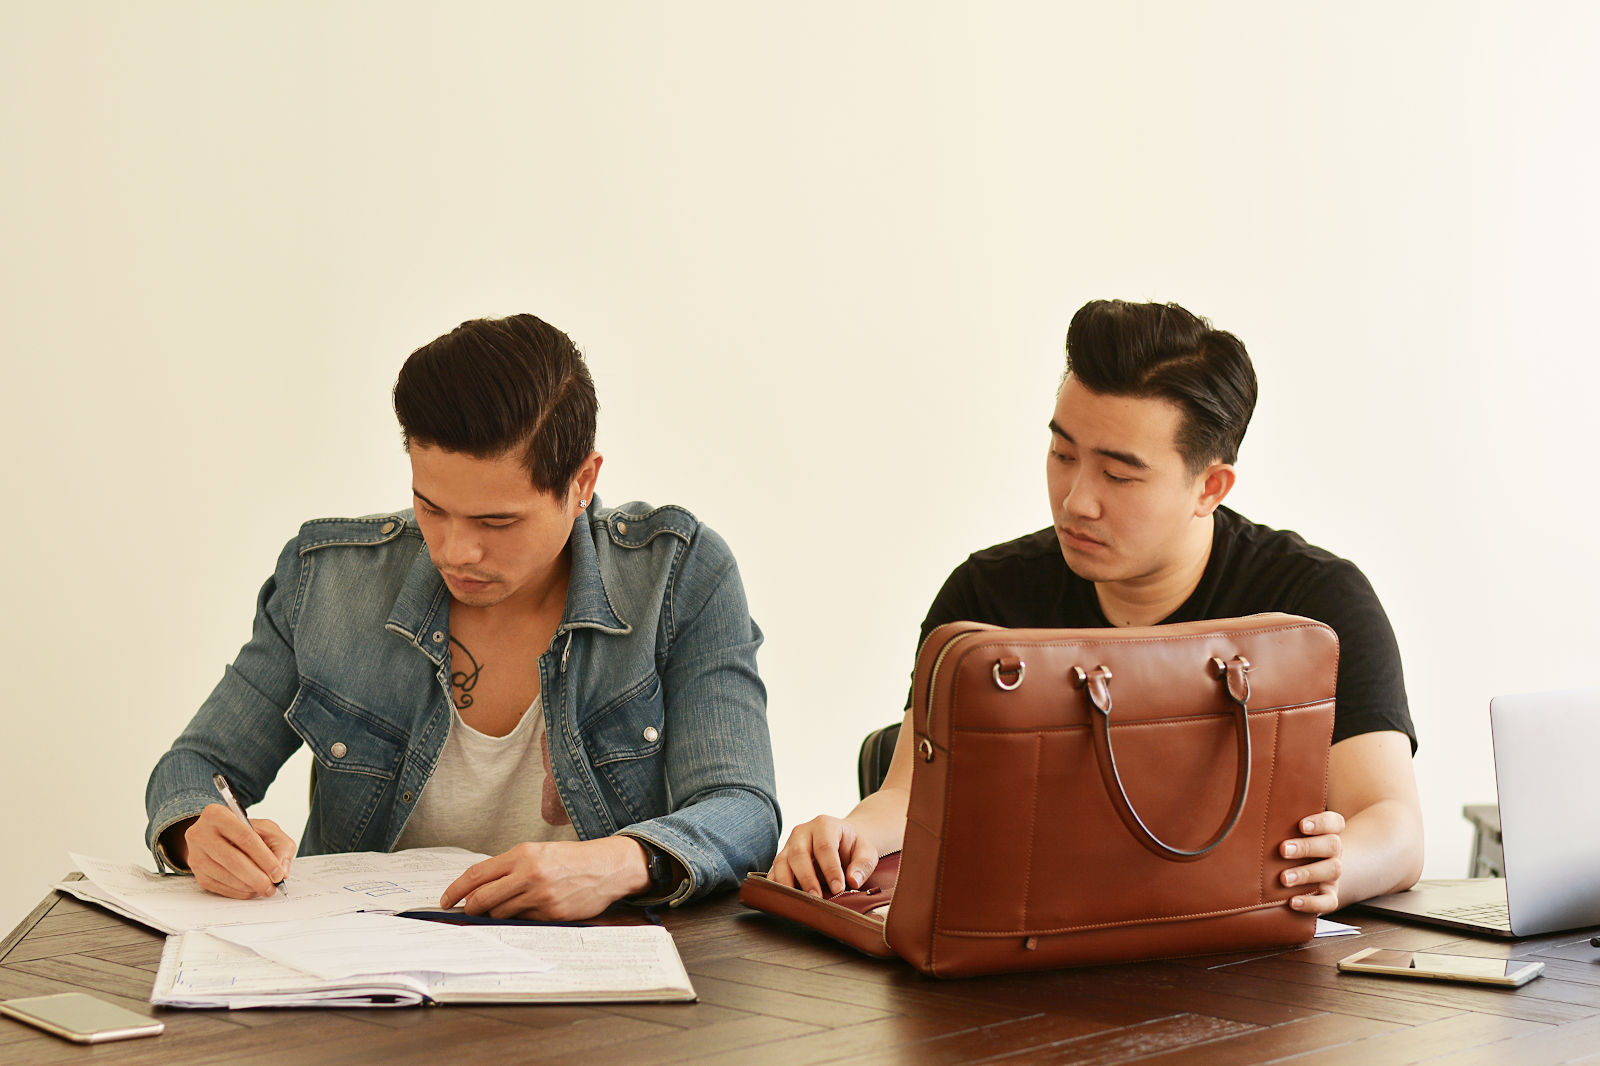 capitalizing-on-kickstarter-to-start-a-2-3m-leather-bags-and-accessories-brand